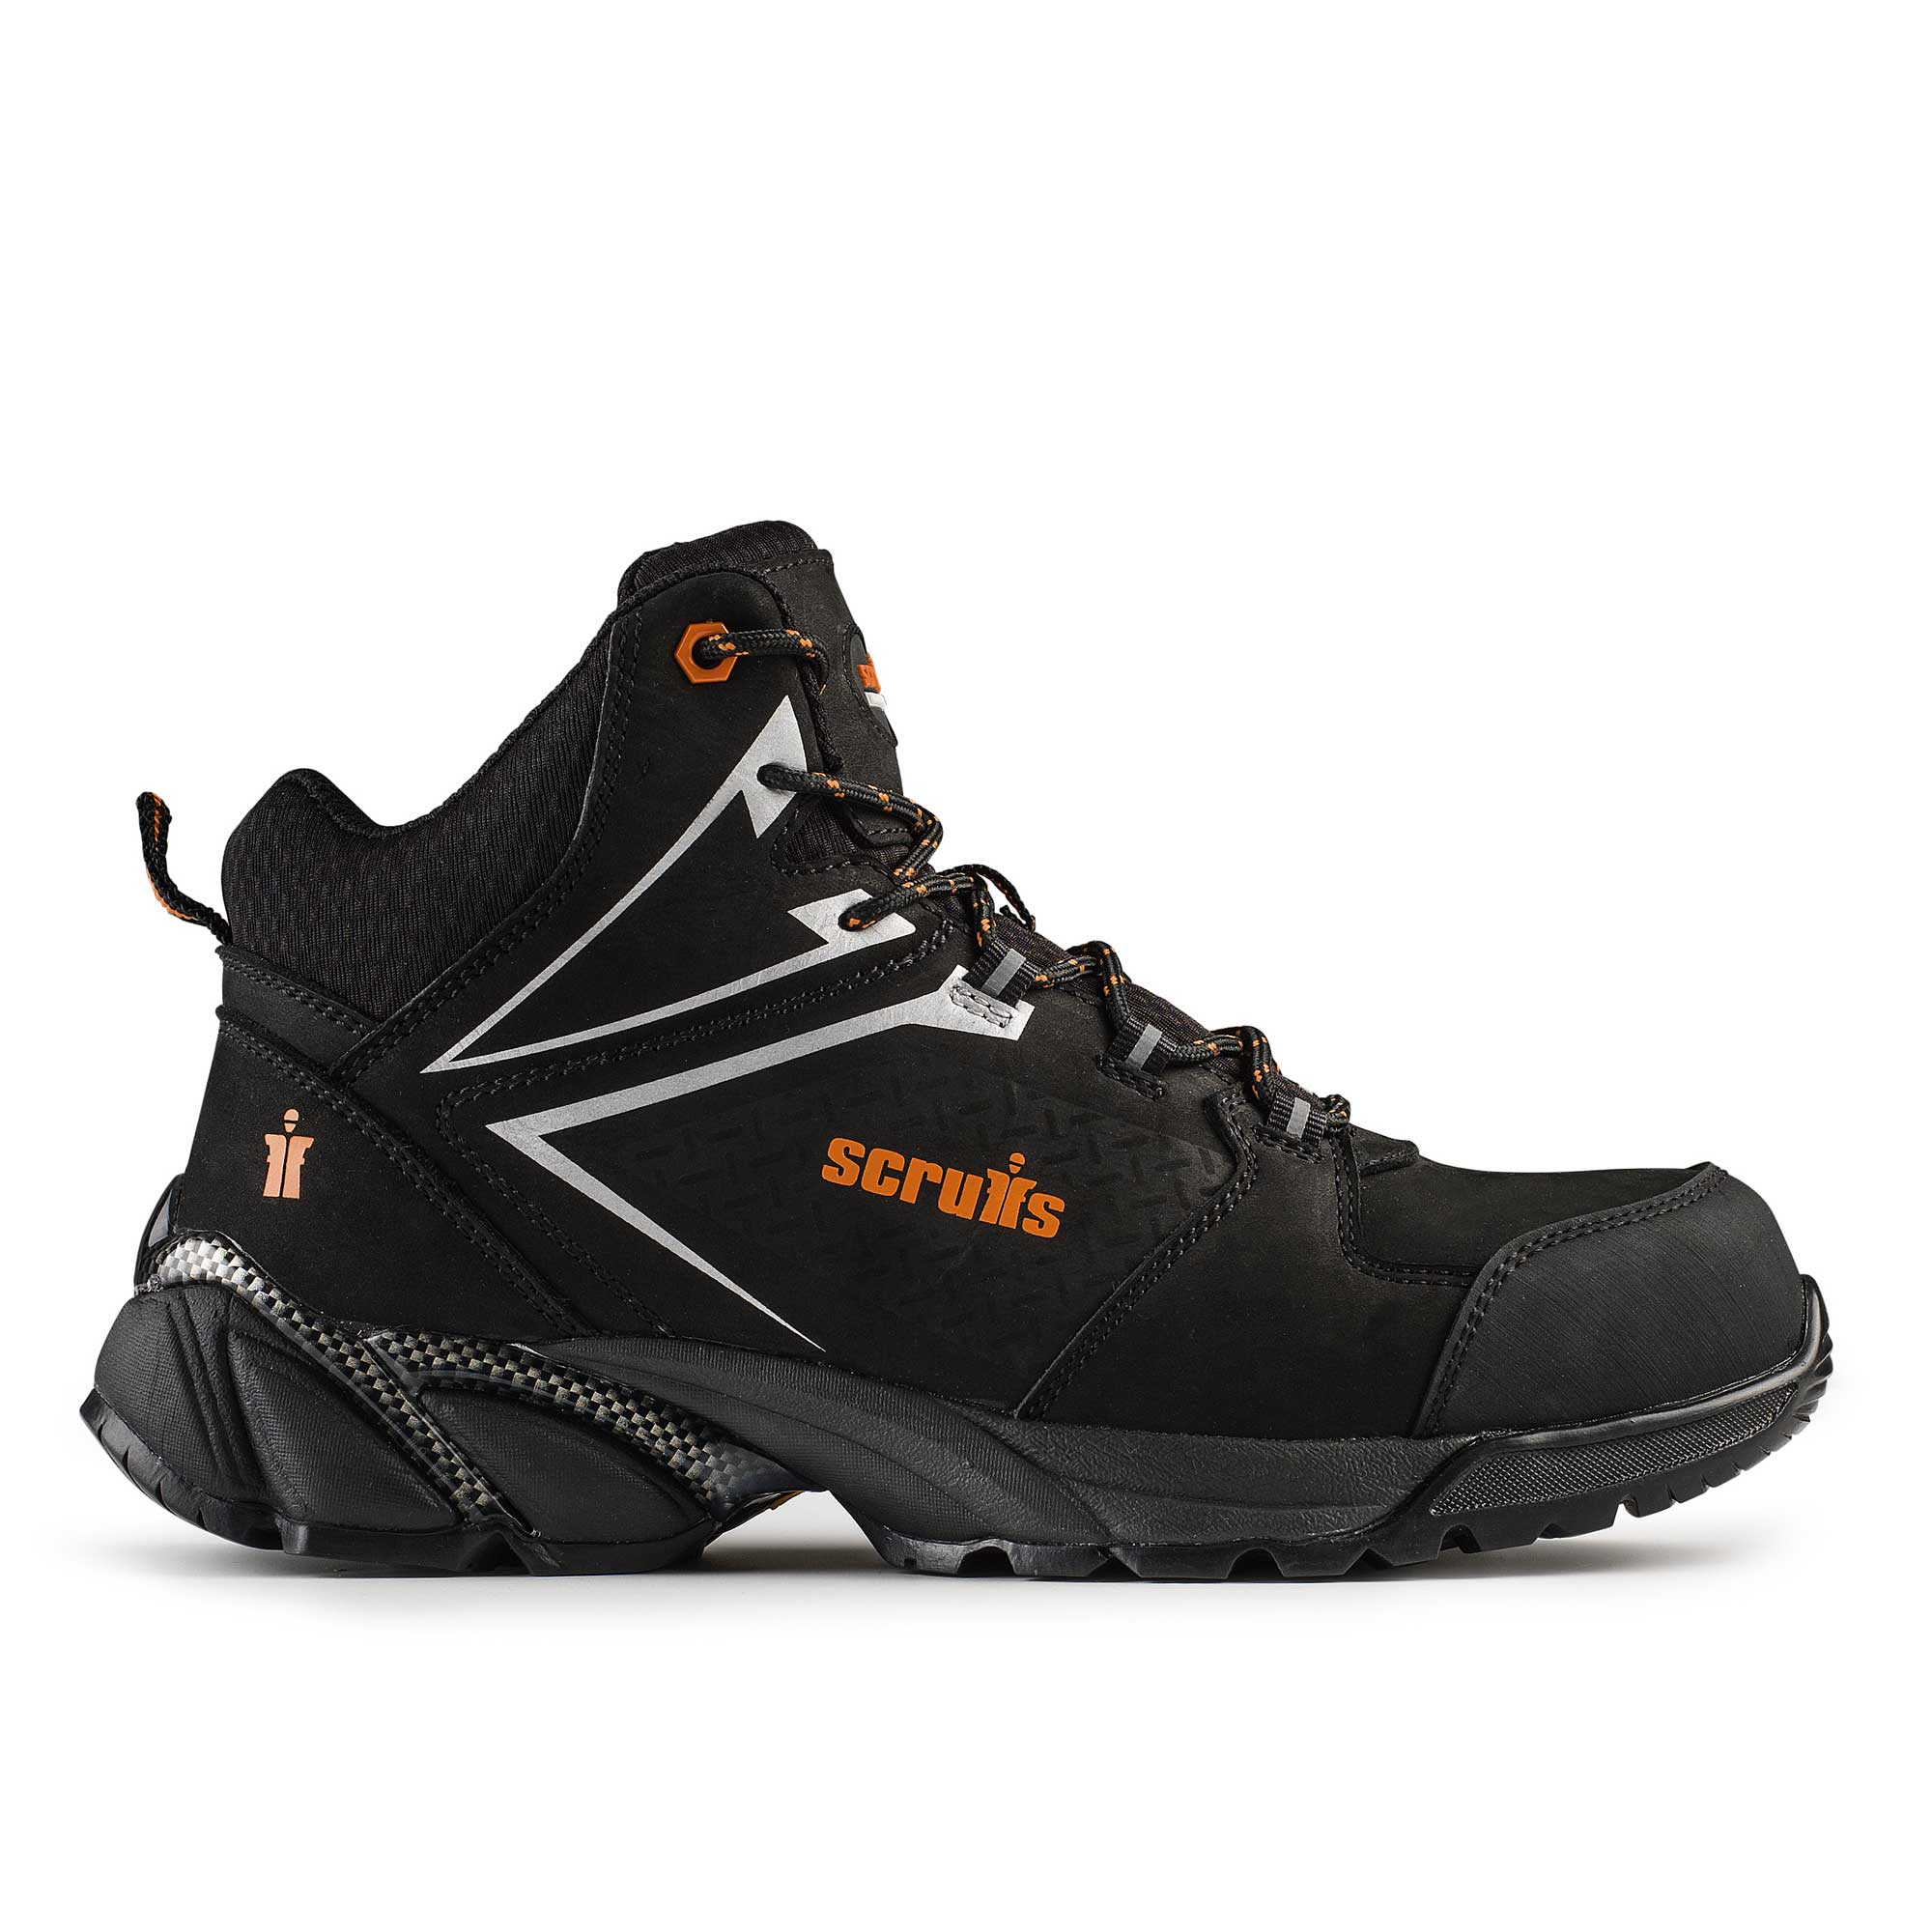 shoes comforter s view comfortable gsg hna waterproof steel boots most haix outside toe tactical swat